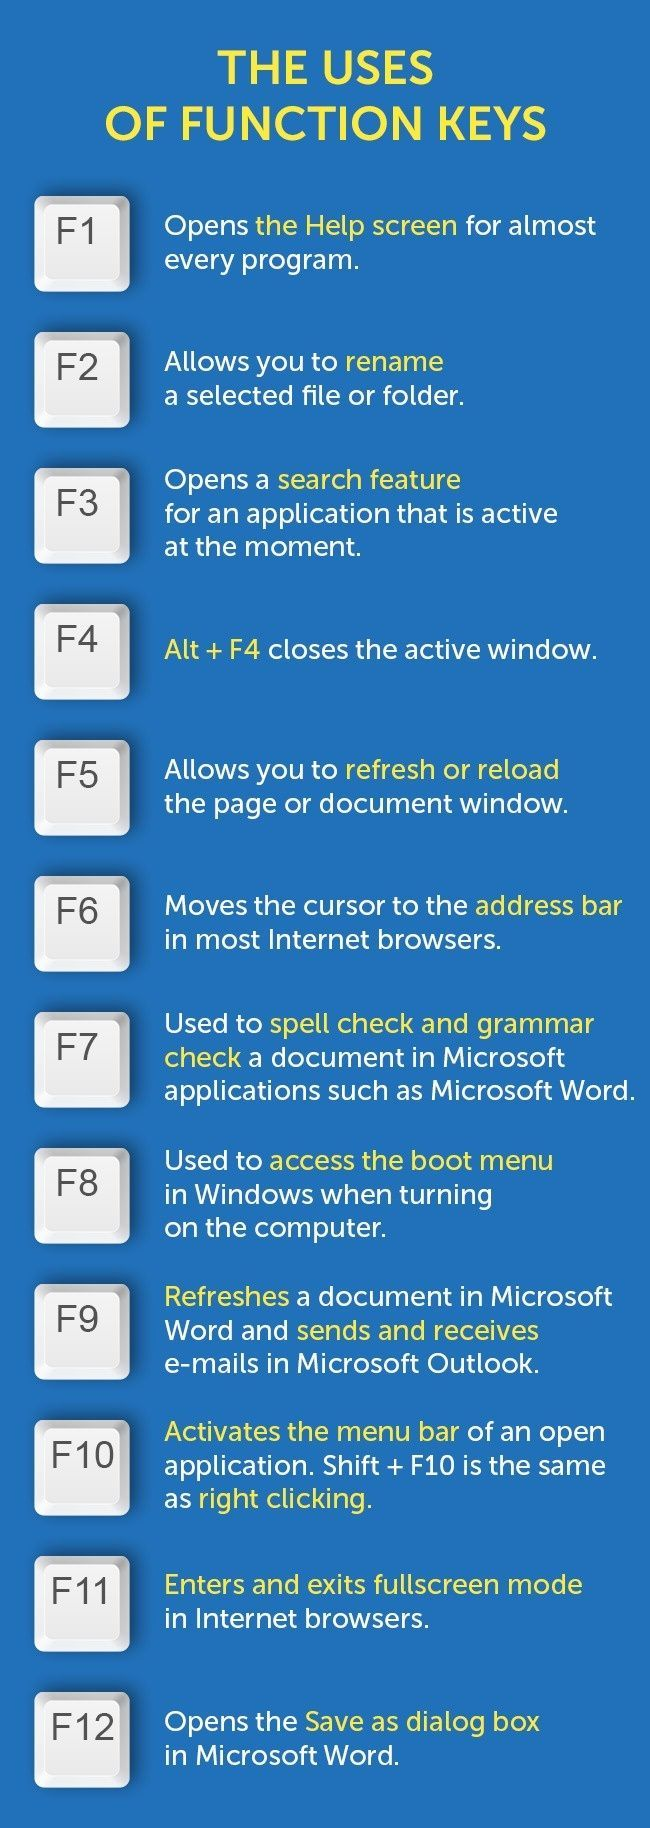 F1 To F12: Learn How The Function Keys Can Save You Time We have all seen function keys before. They are those keys marked F1 to F12 on our computer k…